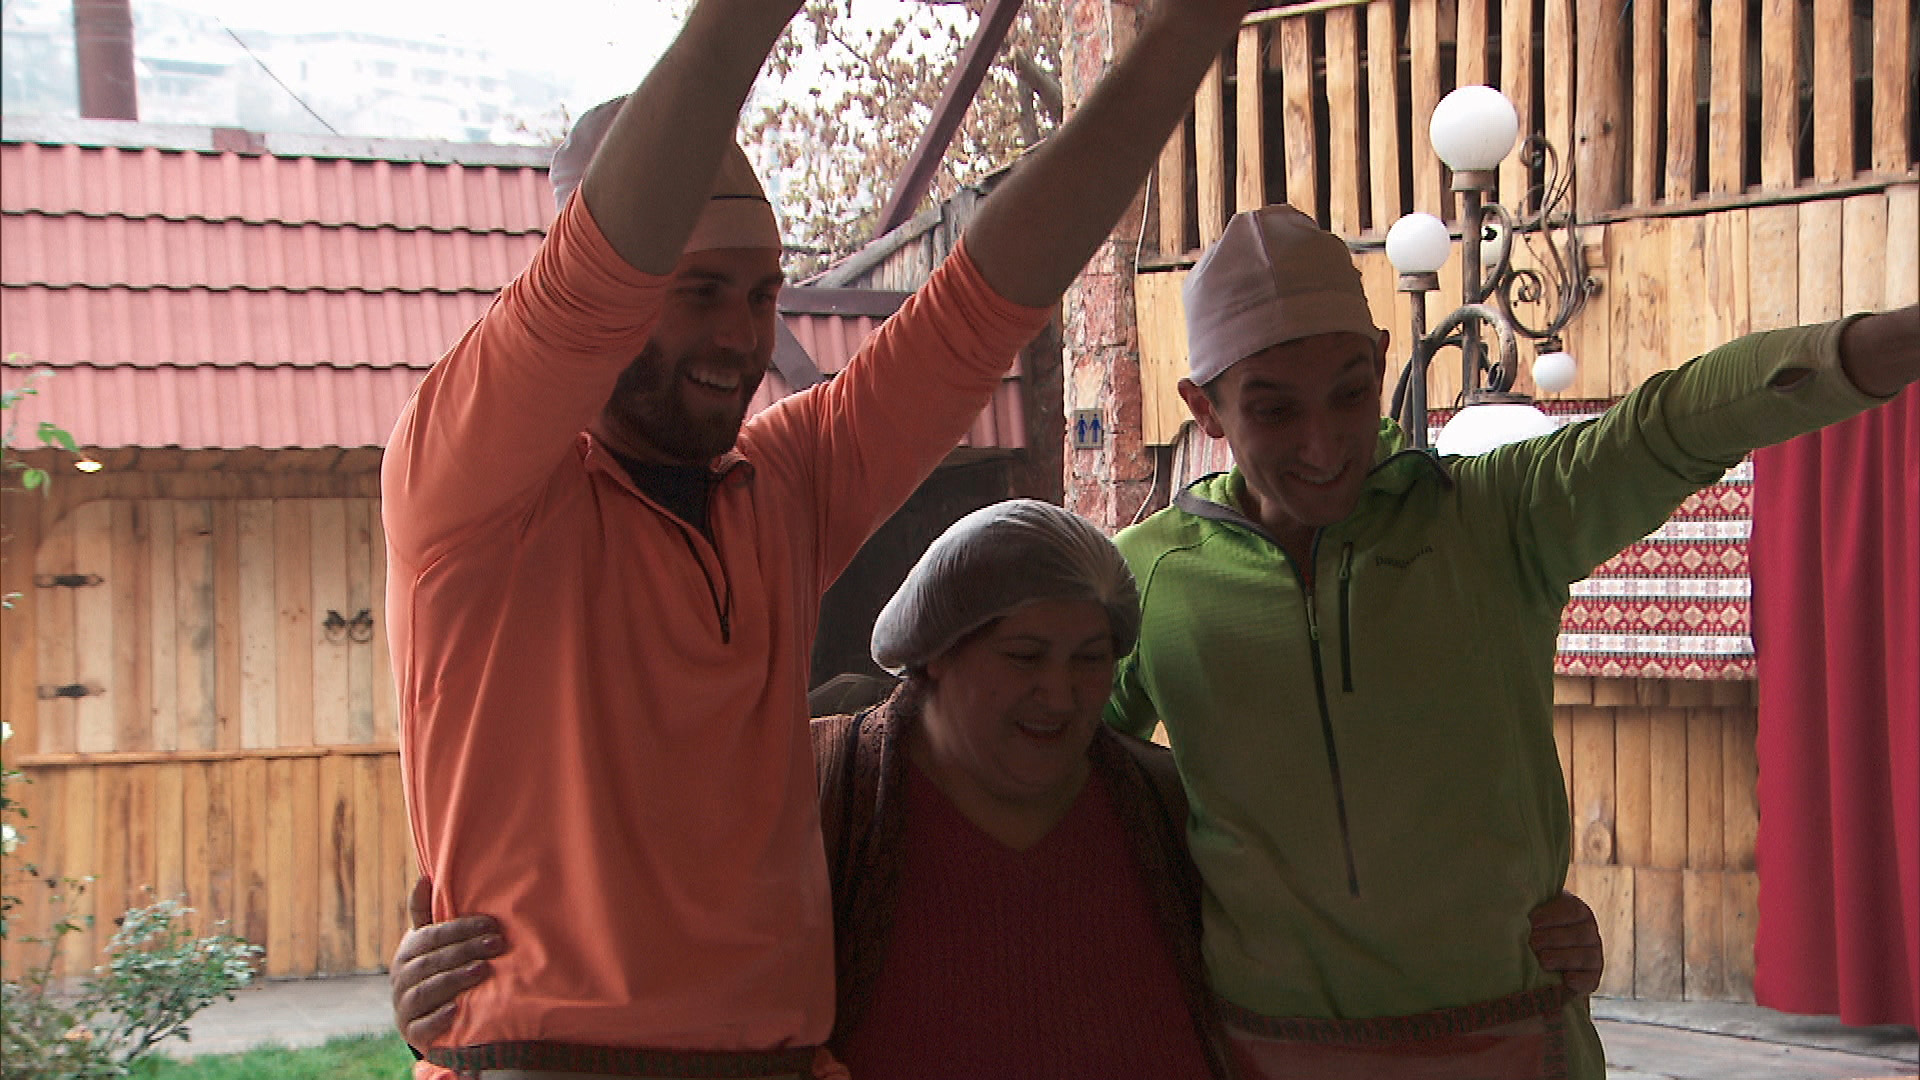 Brodie and Kurt give one local Armenian a big hug.